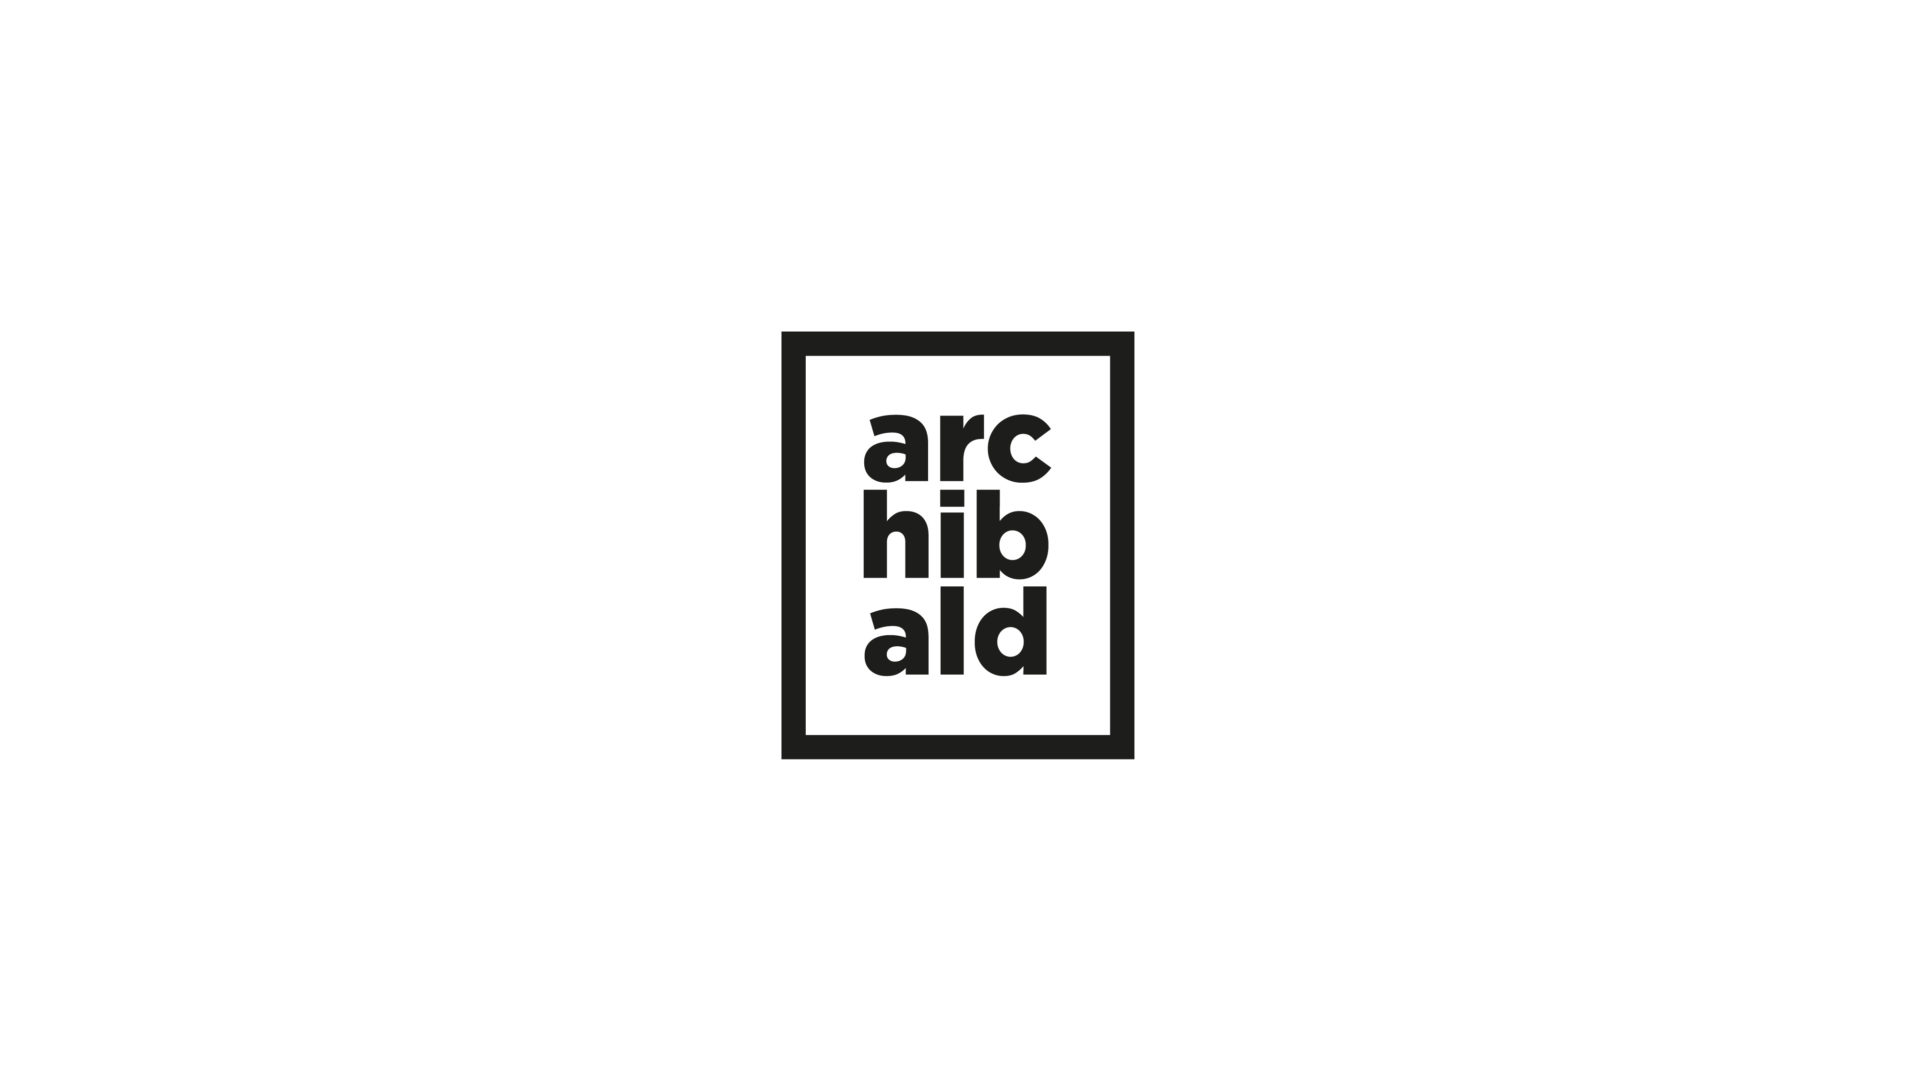 black and white Archibald logo